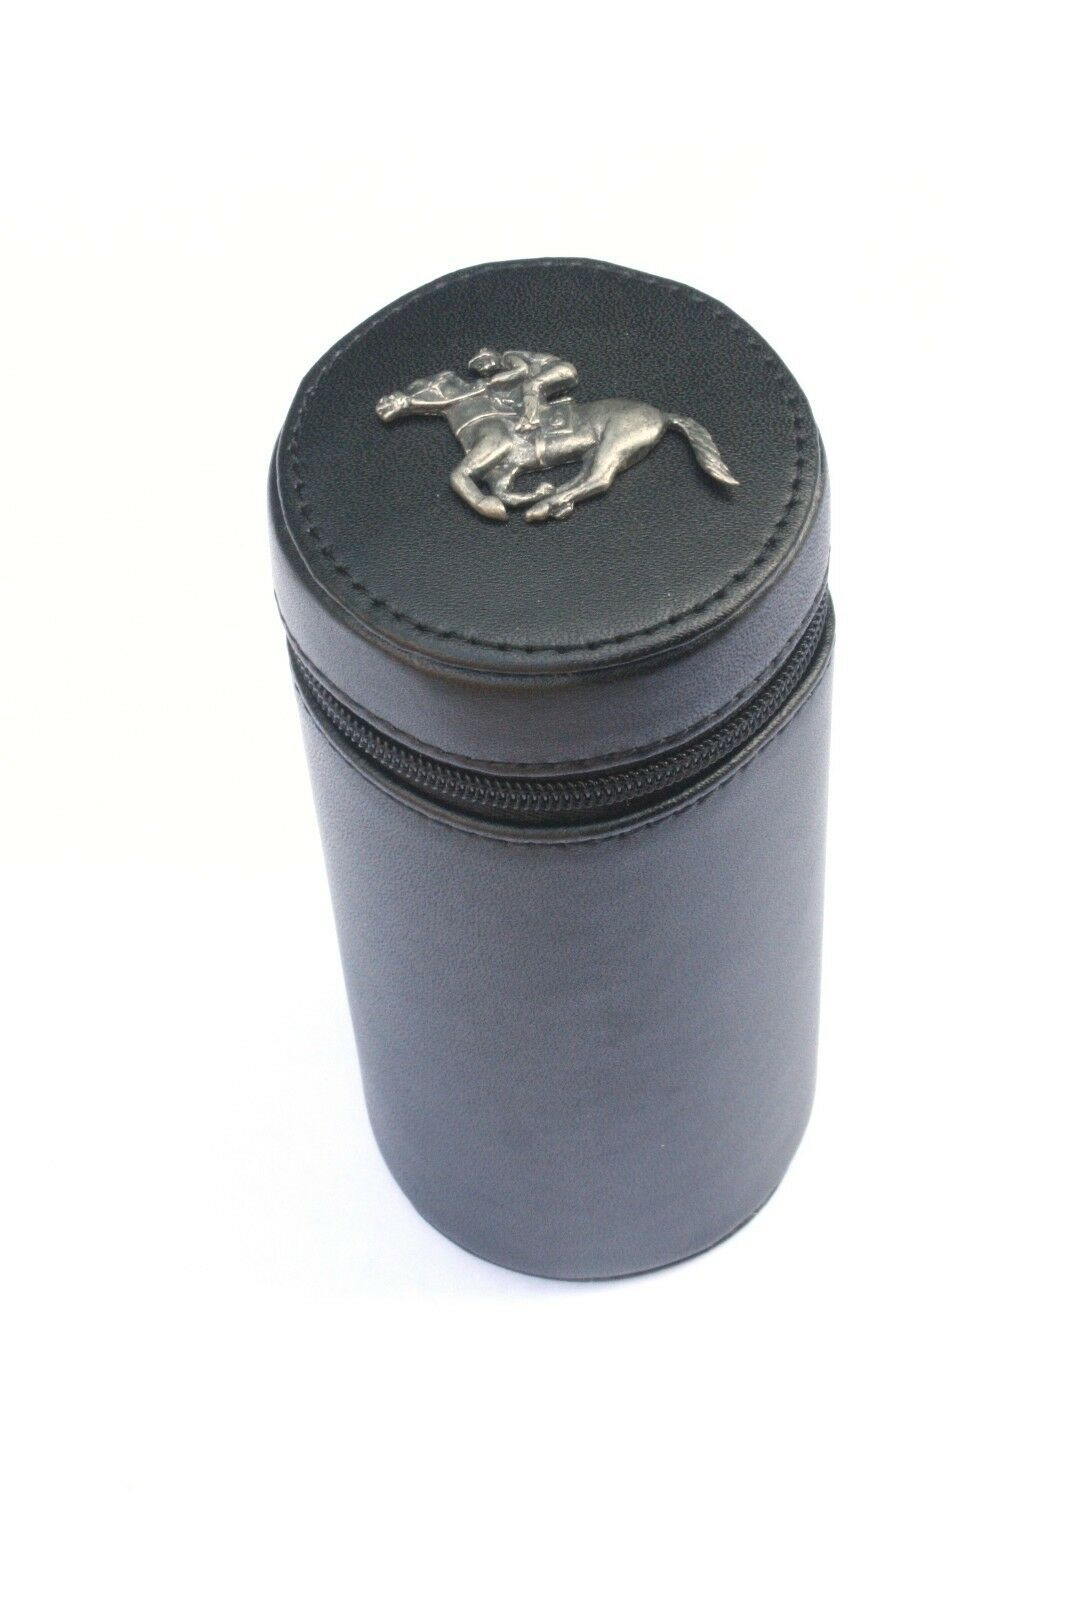 Horse Racing Shooting Peg Position Finder Numberojo Cups 1-10 negro Leather Case